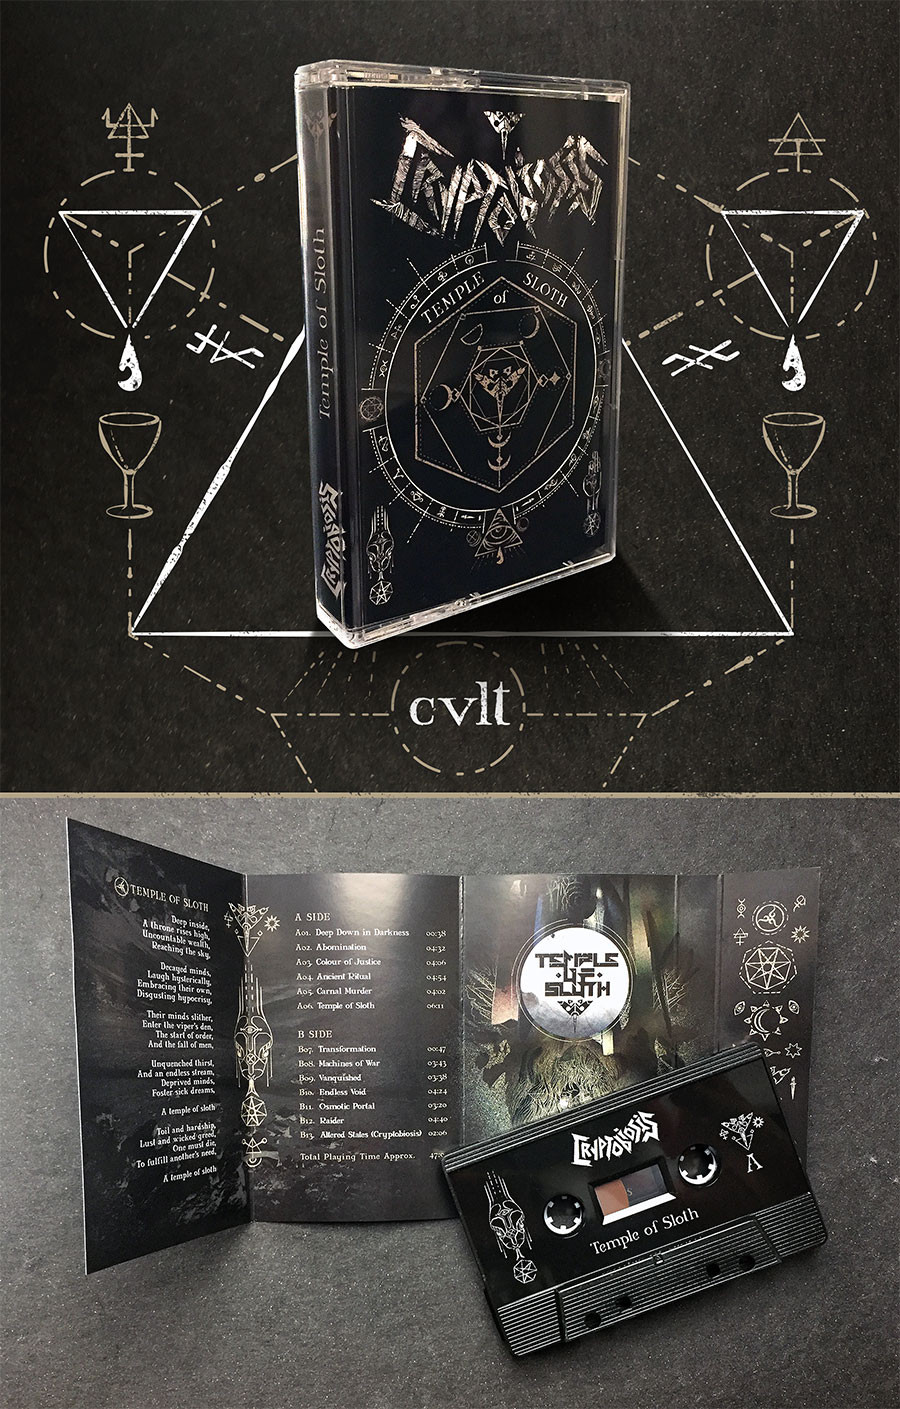 Temple of Sloth out on Audio Cassette, strictly limited to 100 copies.